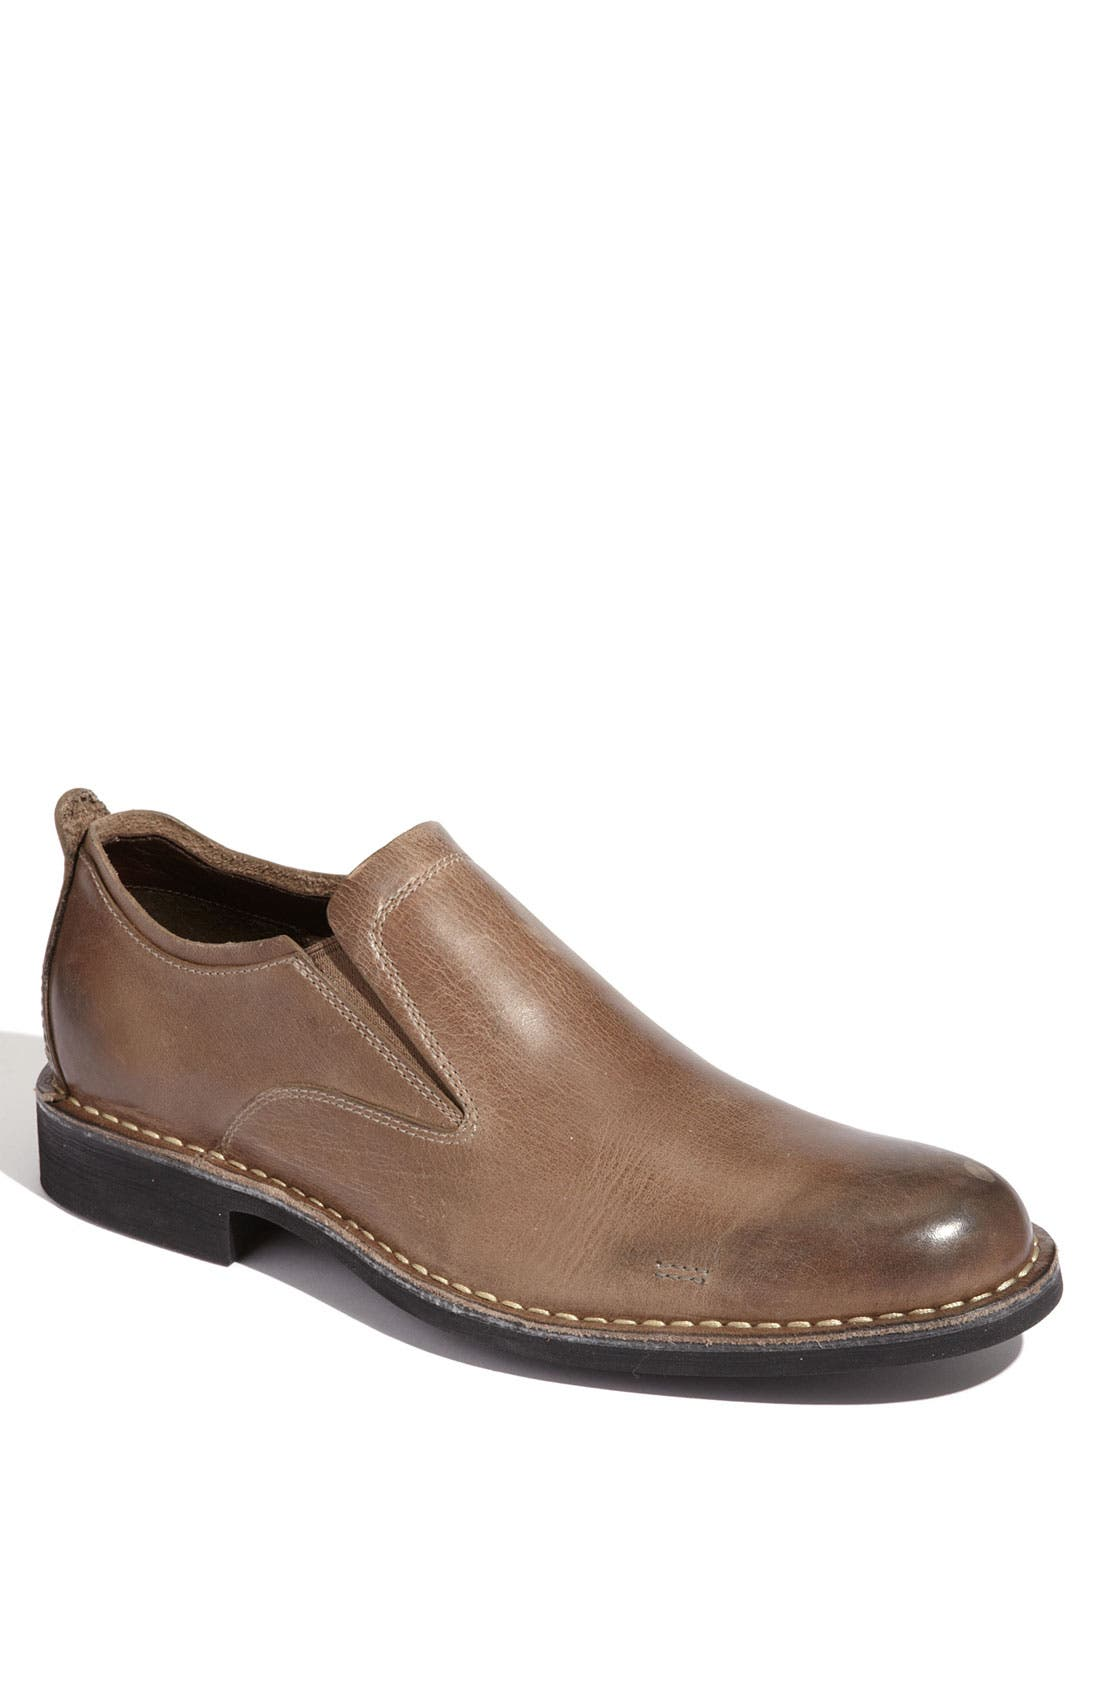 Alternate Image 1 Selected - Cole Haan 'Air Blythe' Loafer